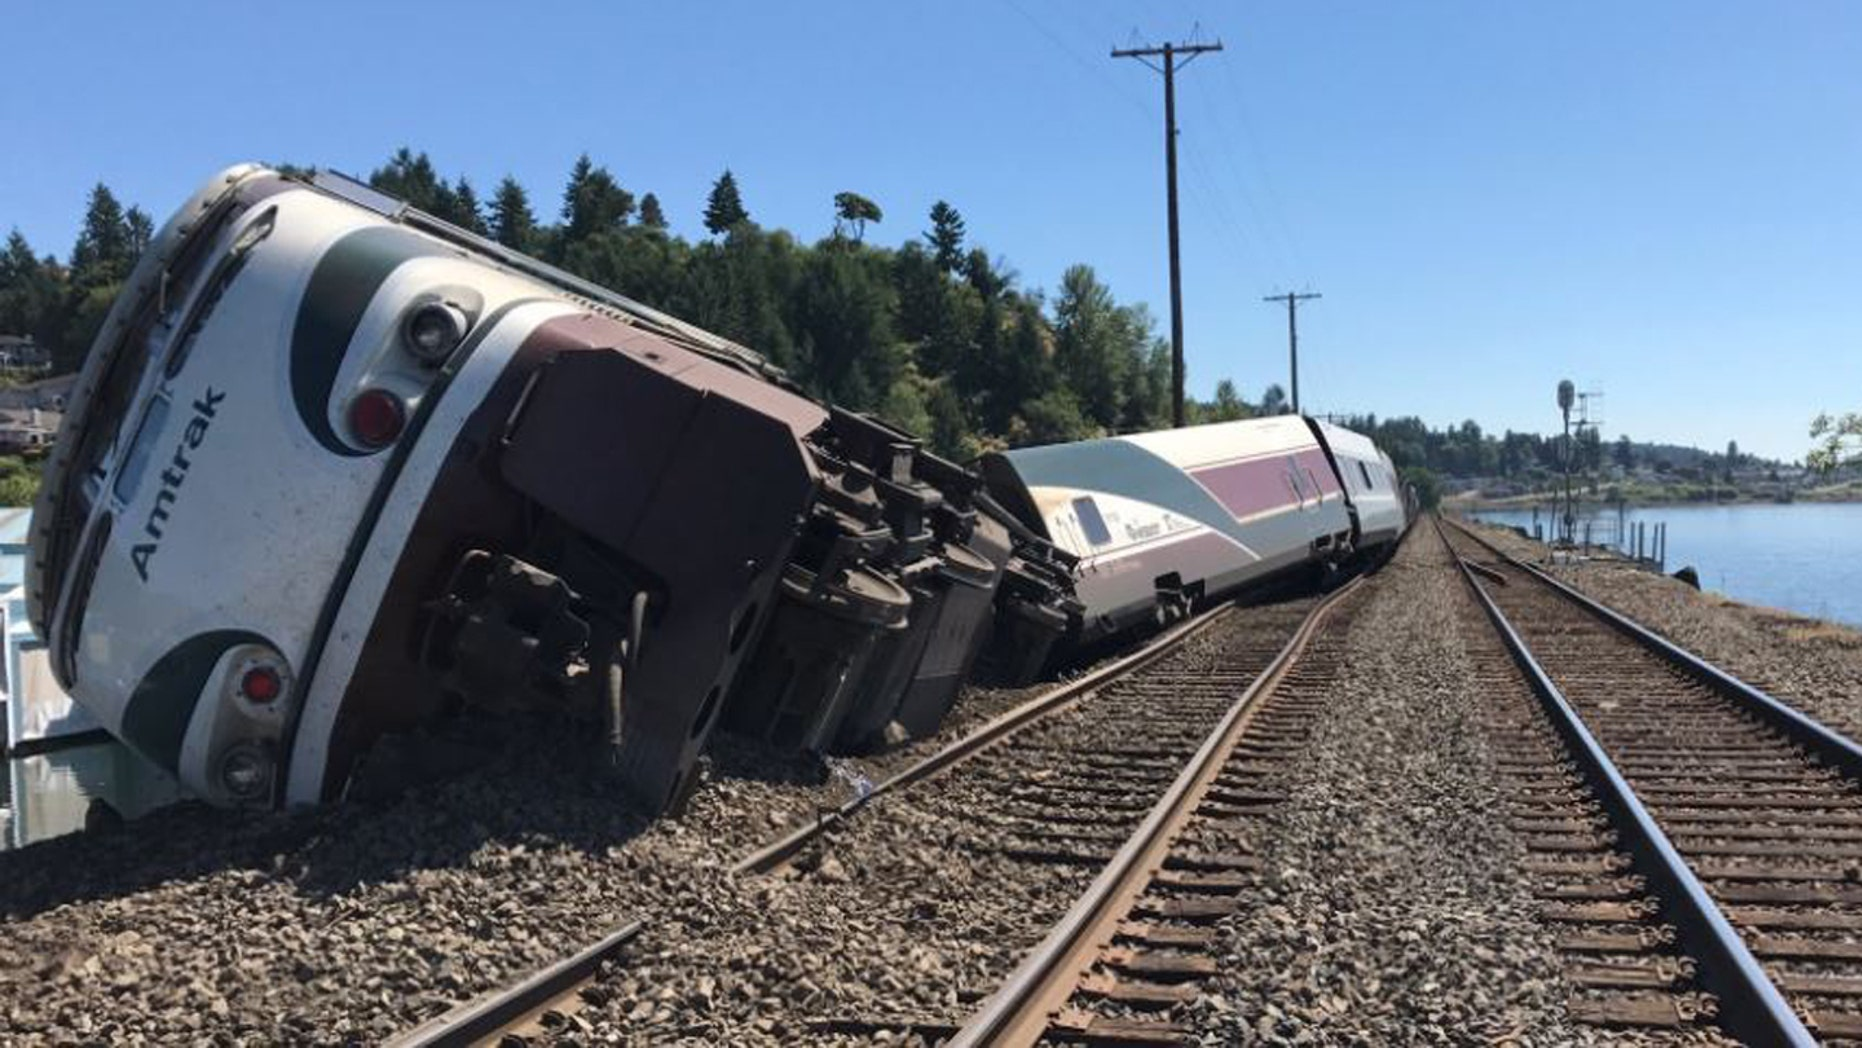 An Amtrak train lies on its side after it derailed in Steilacoom, Wash. Sunday, July 2, 2017.